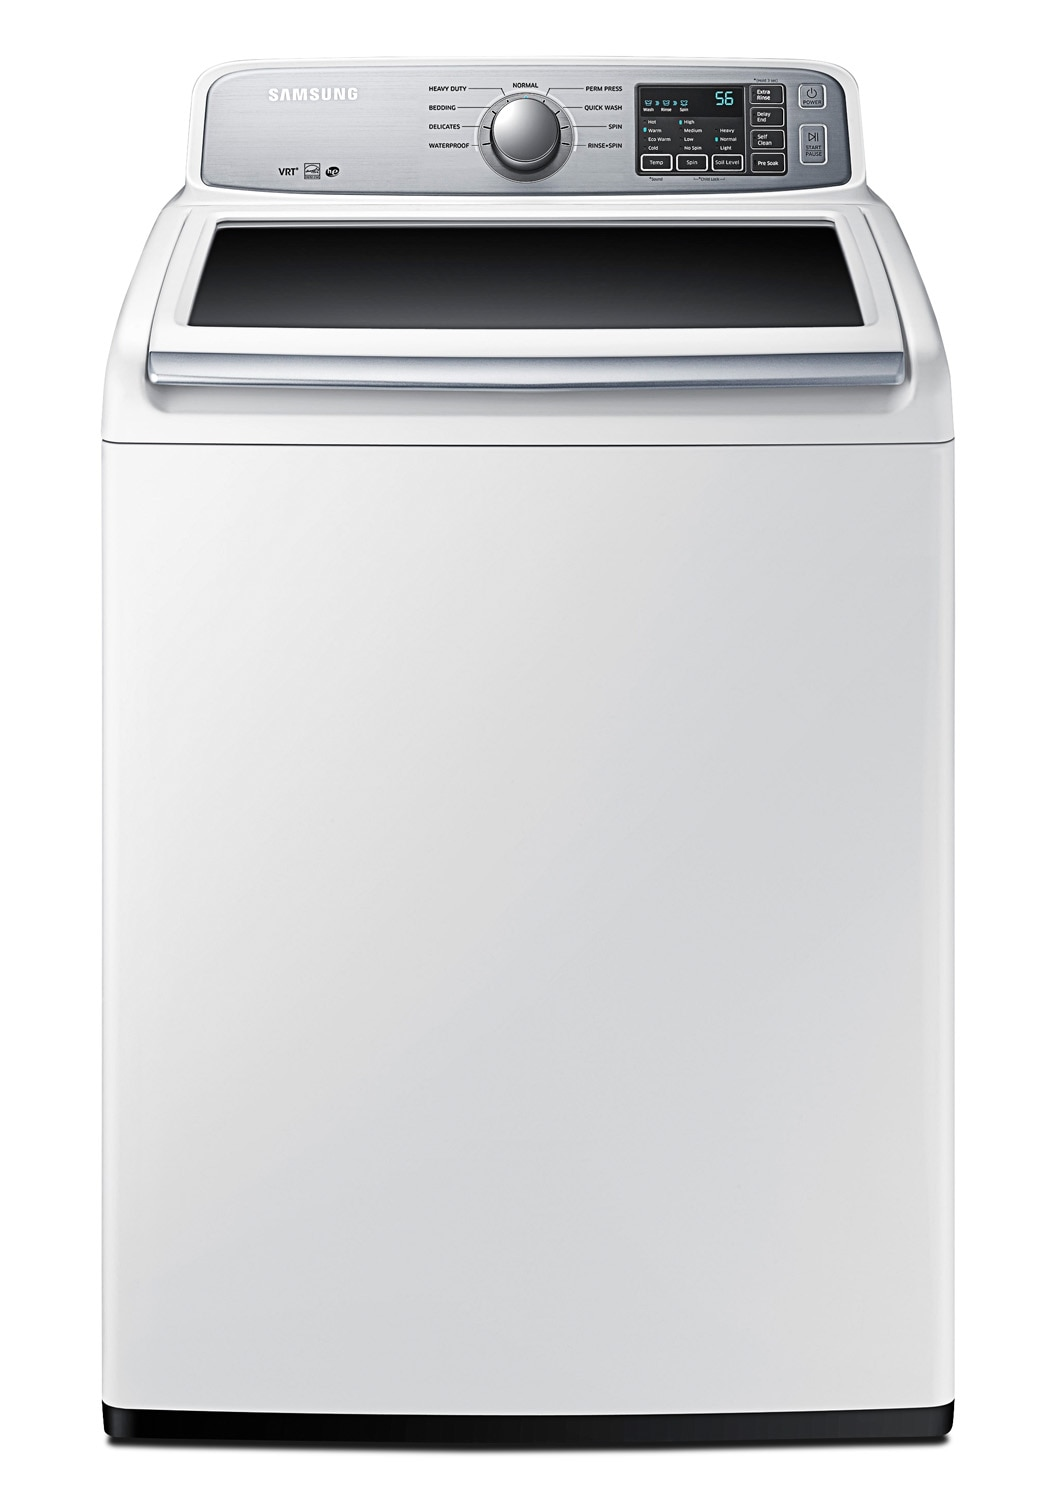 Washers and Dryers - Samsung White Top-Load Washer  (5.2 Cu. Ft. IEC) - WA45H7000AW